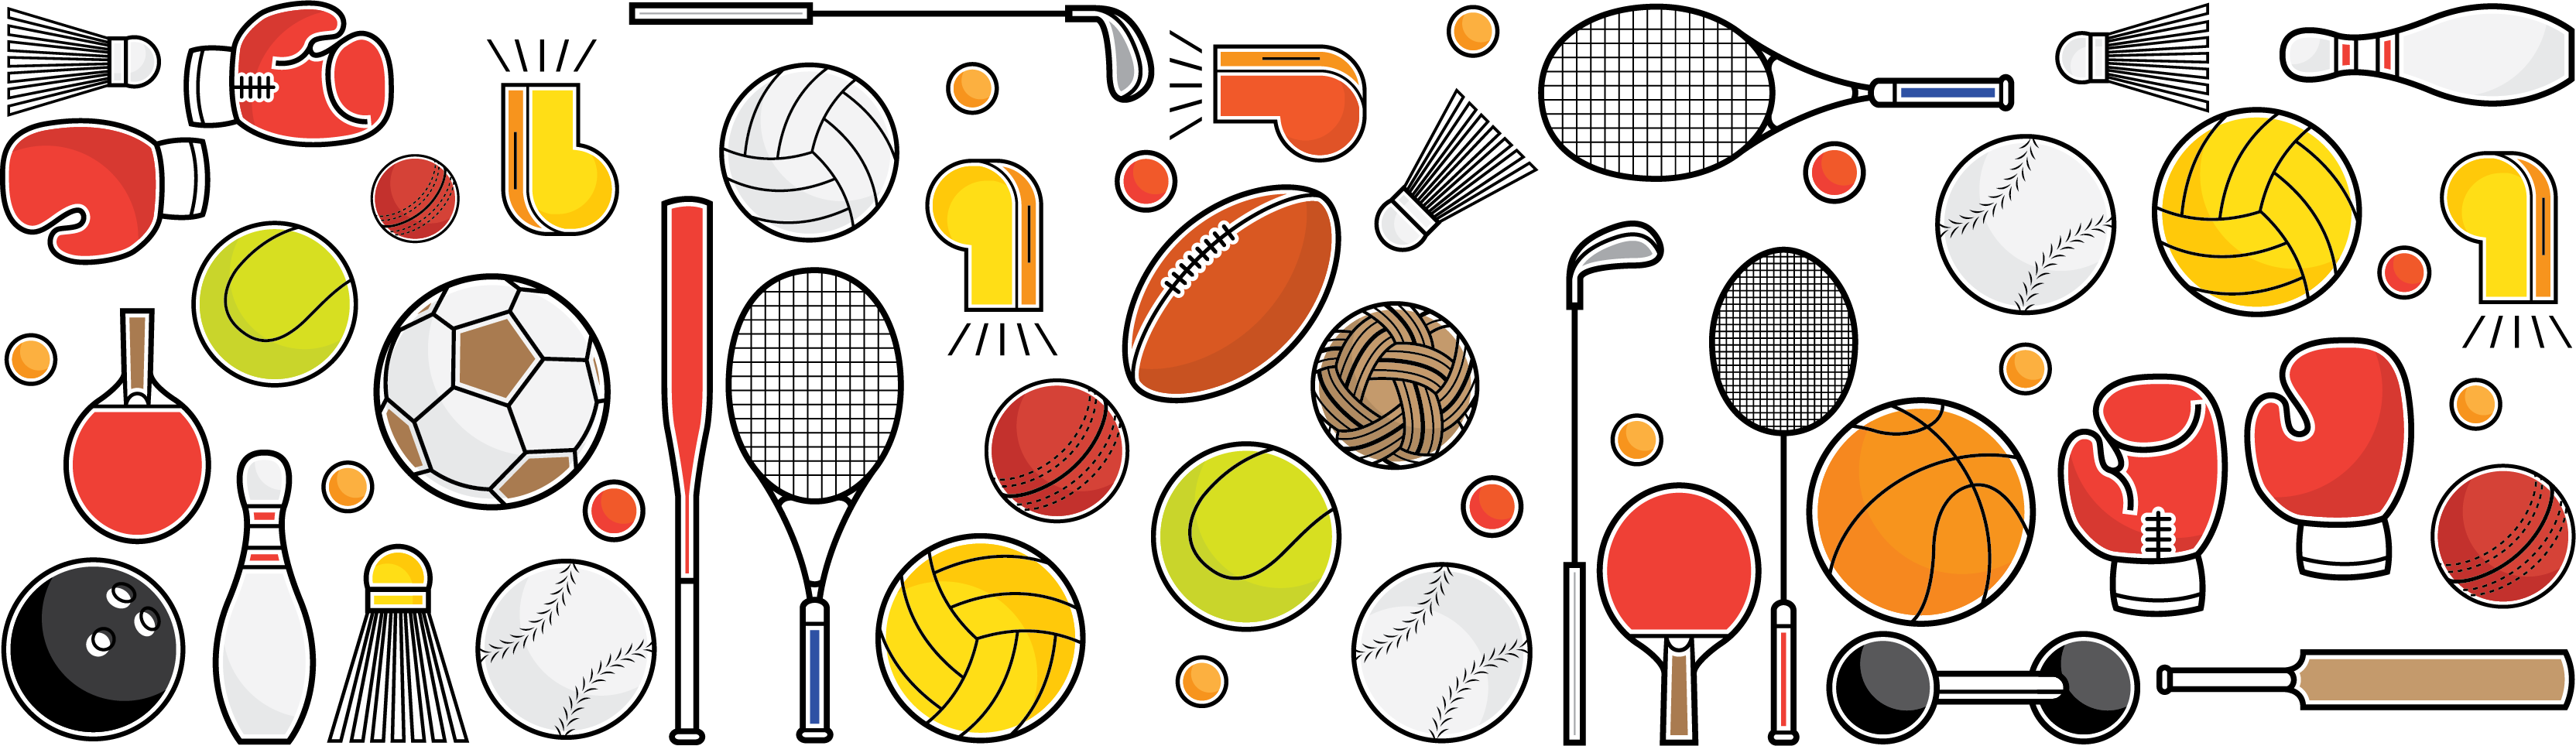 Graphic of images representing different sports